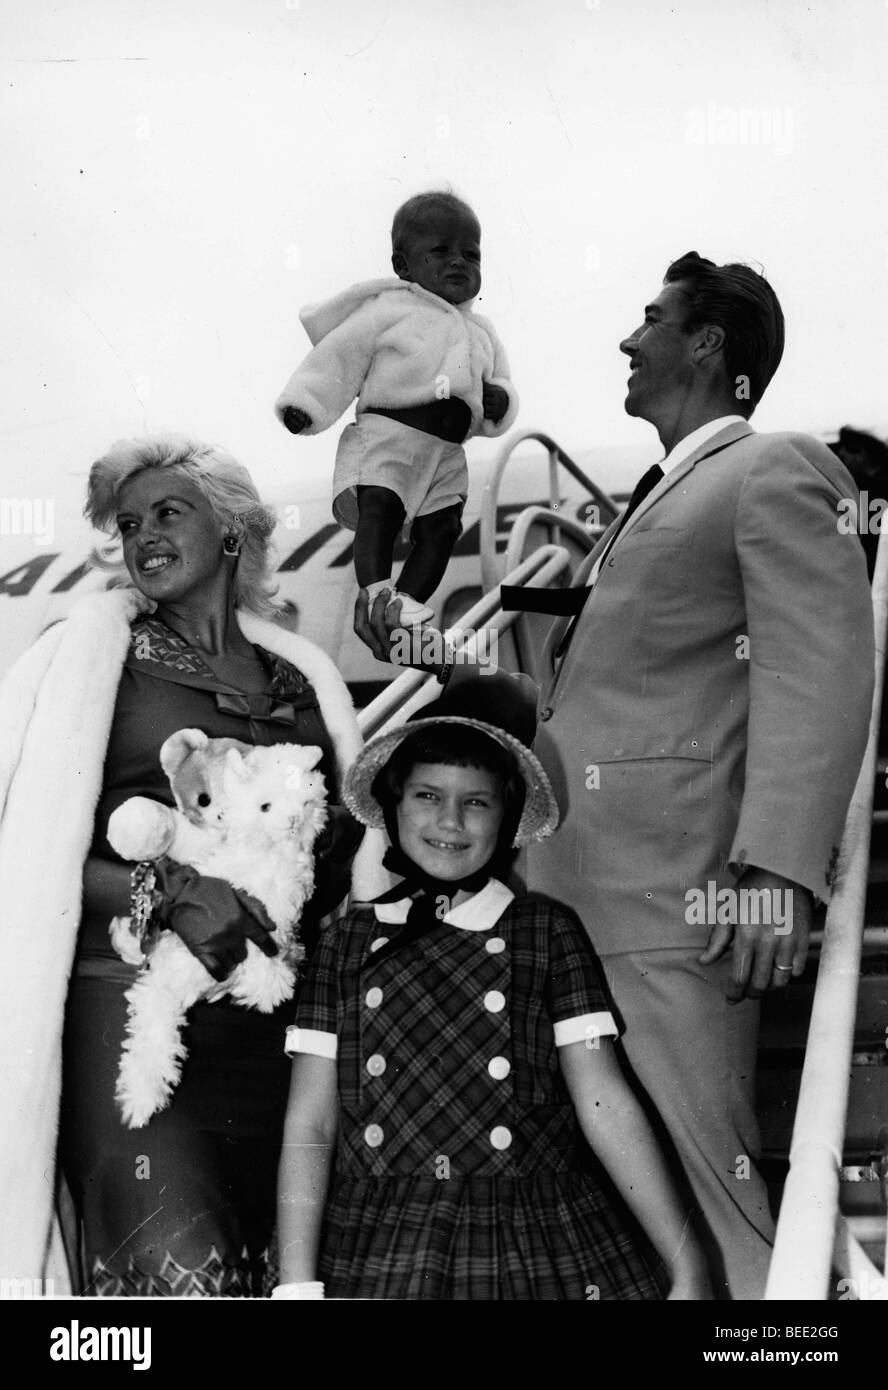 Actress Jayne Mansfield, her husband actor and bodybuilder Mickey Hargitay, with their children at an airport. Stock Photo